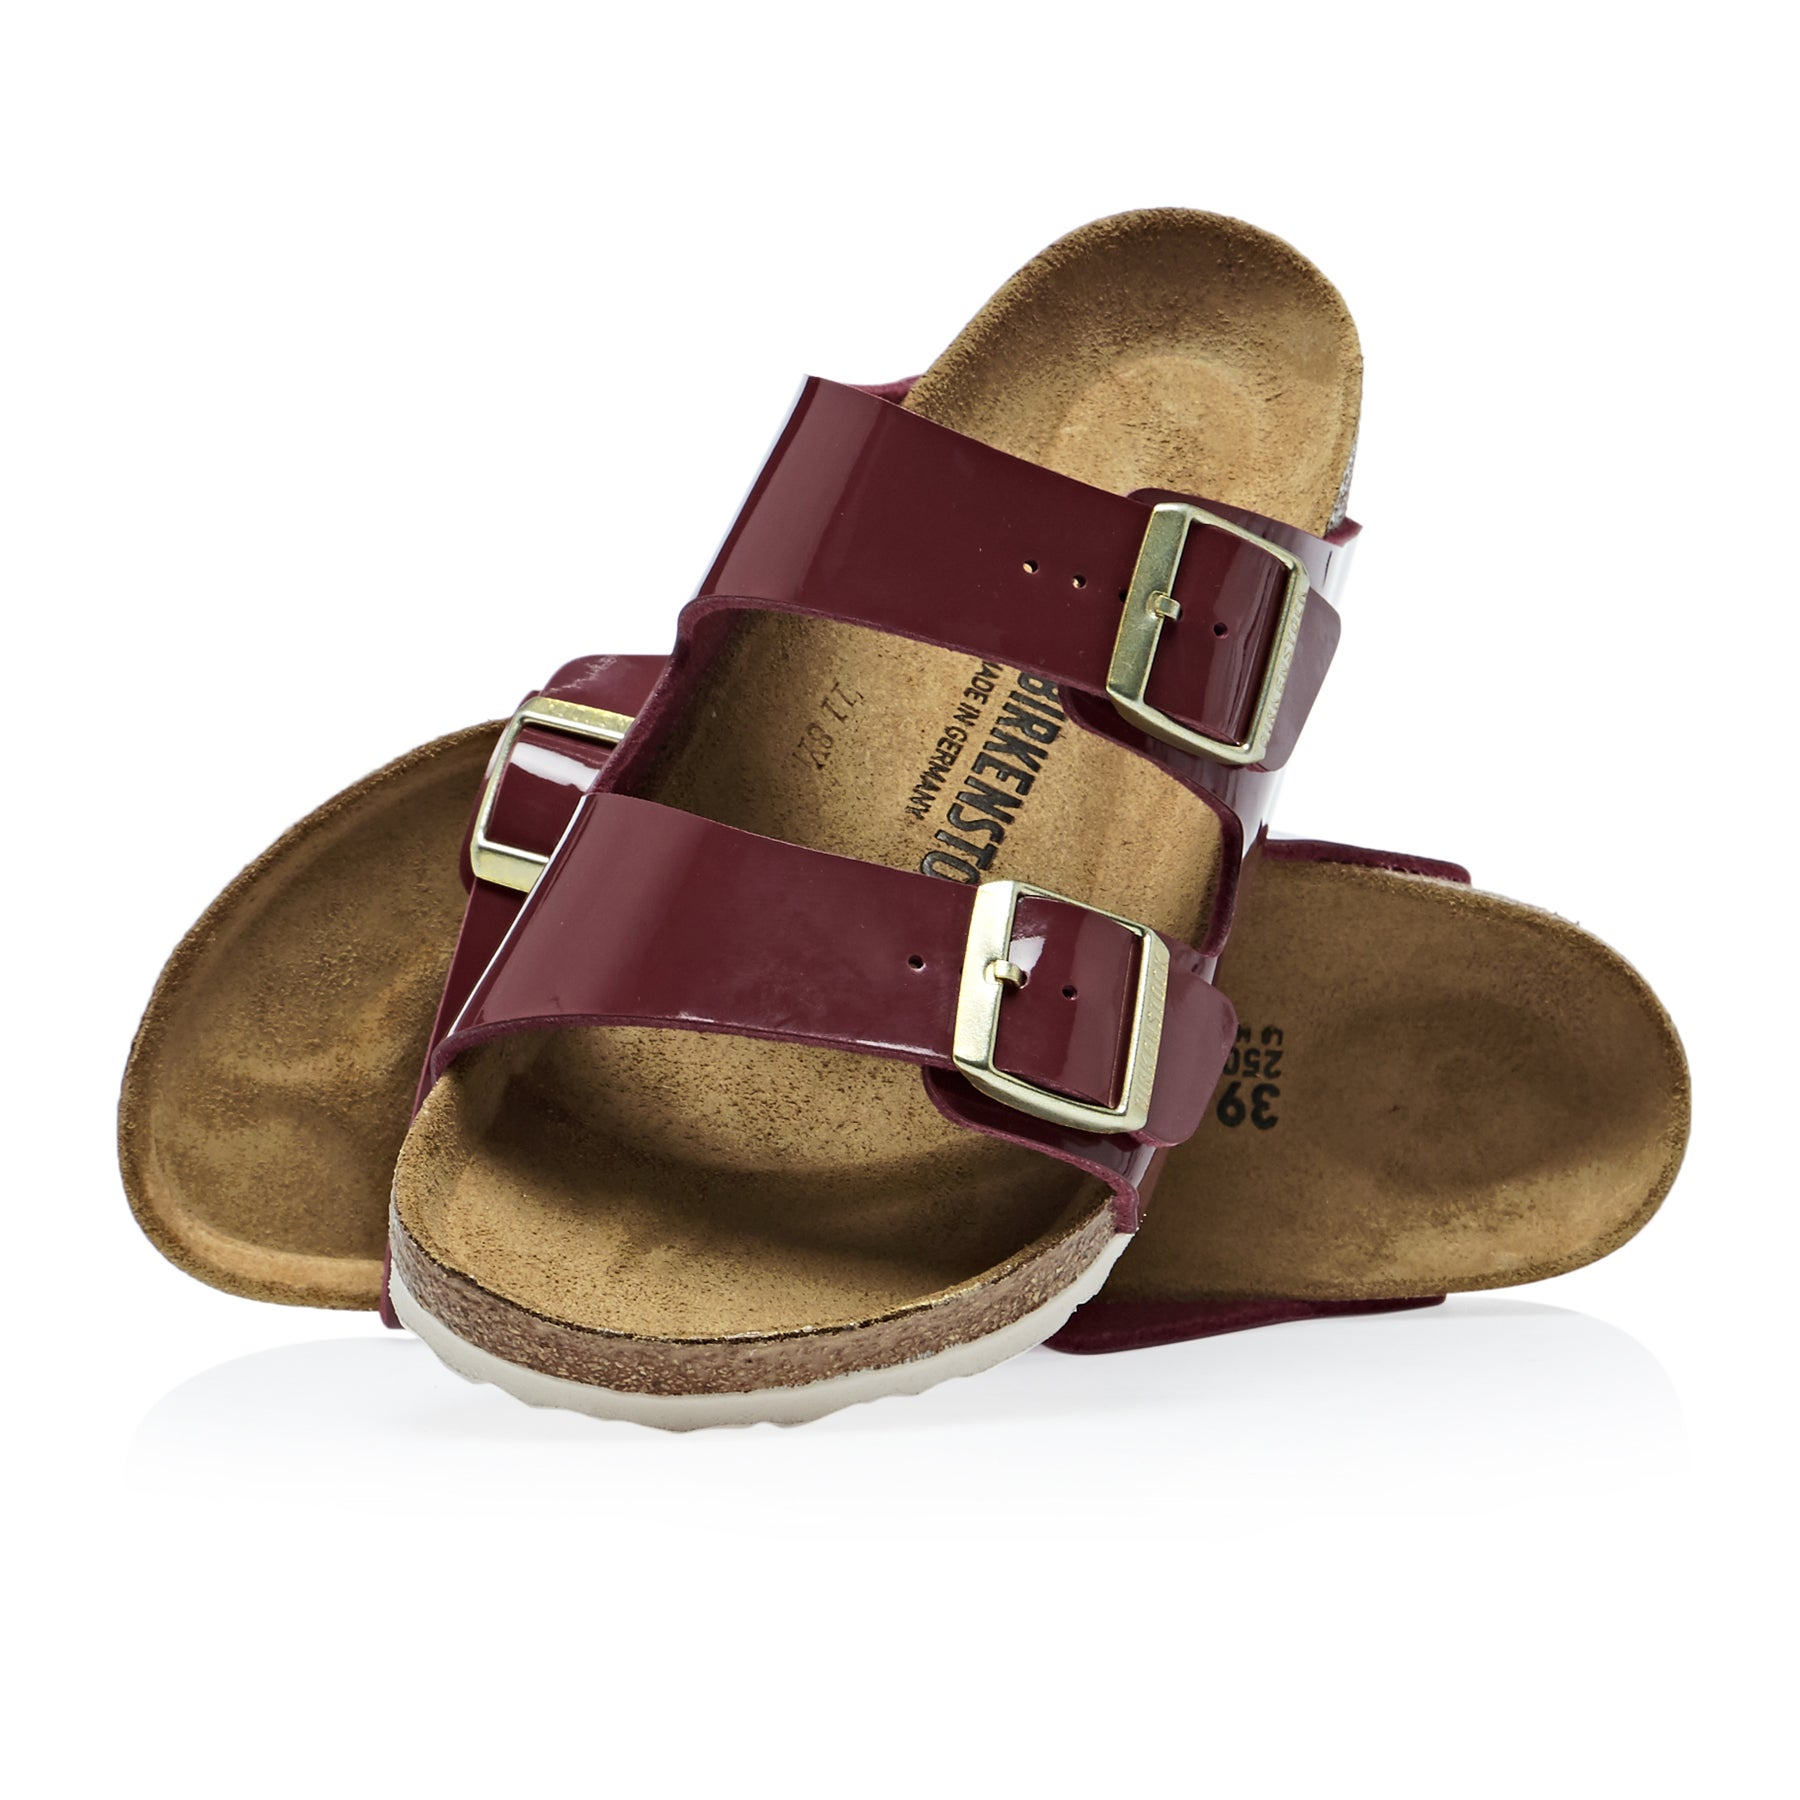 Birkenstock Arizona Womens Sandals - Bordeaux